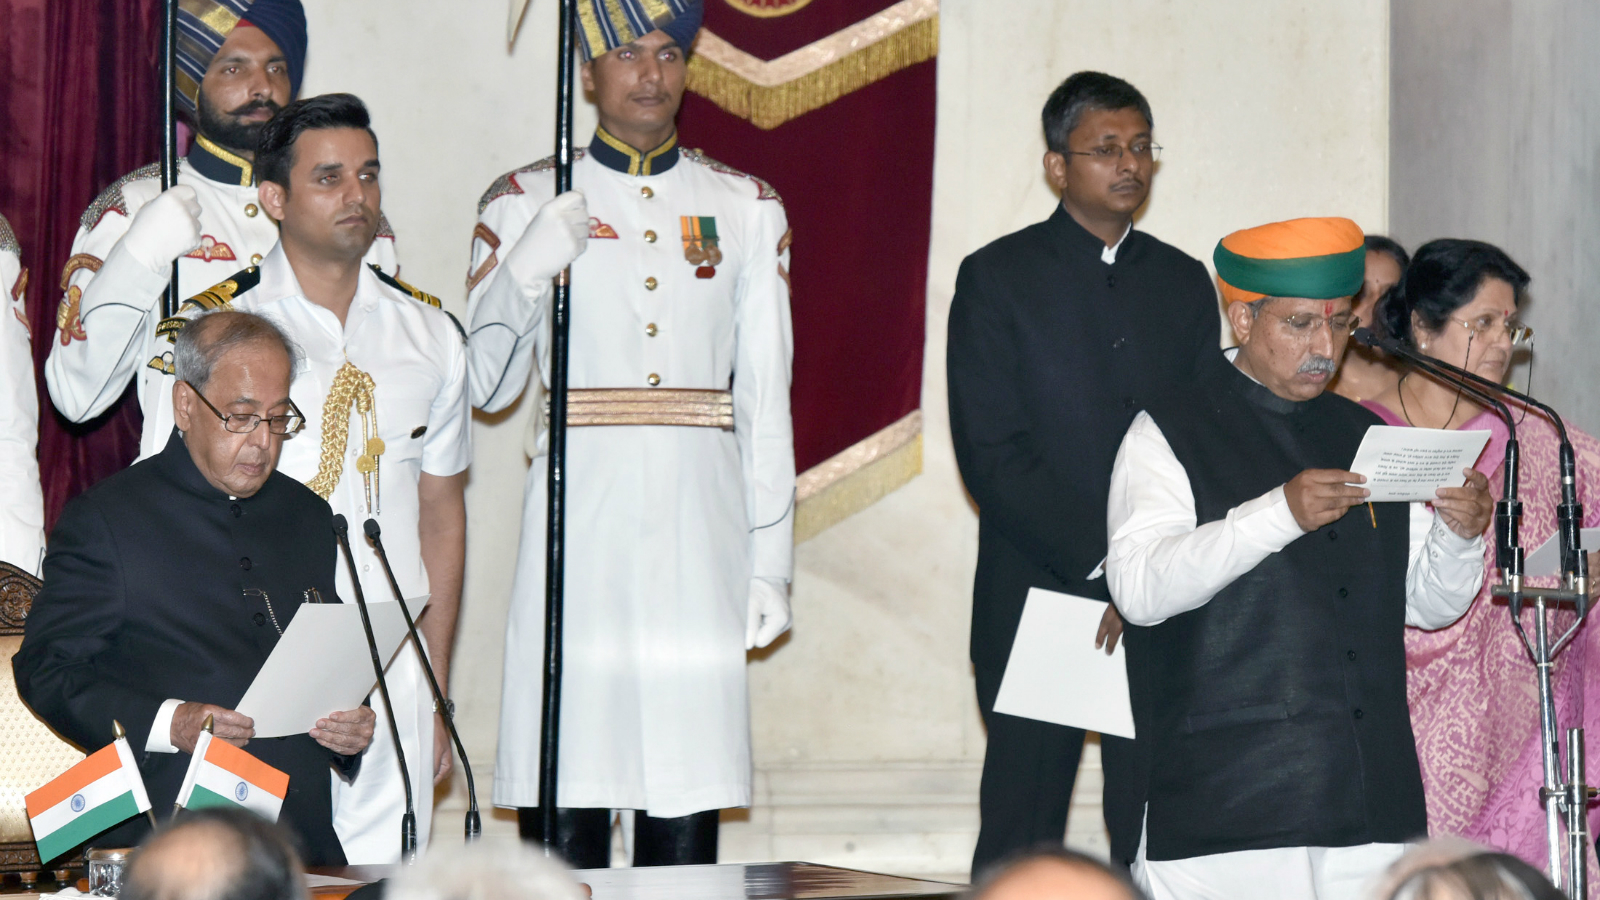 The President, Shri Pranab Mukherjee administering the oath as Minister of State to Shri Arjun Ram Meghwal, at a Swearing-in Ceremony, at Rashtrapati Bhavan, in New Delhi on July 05, 2016.